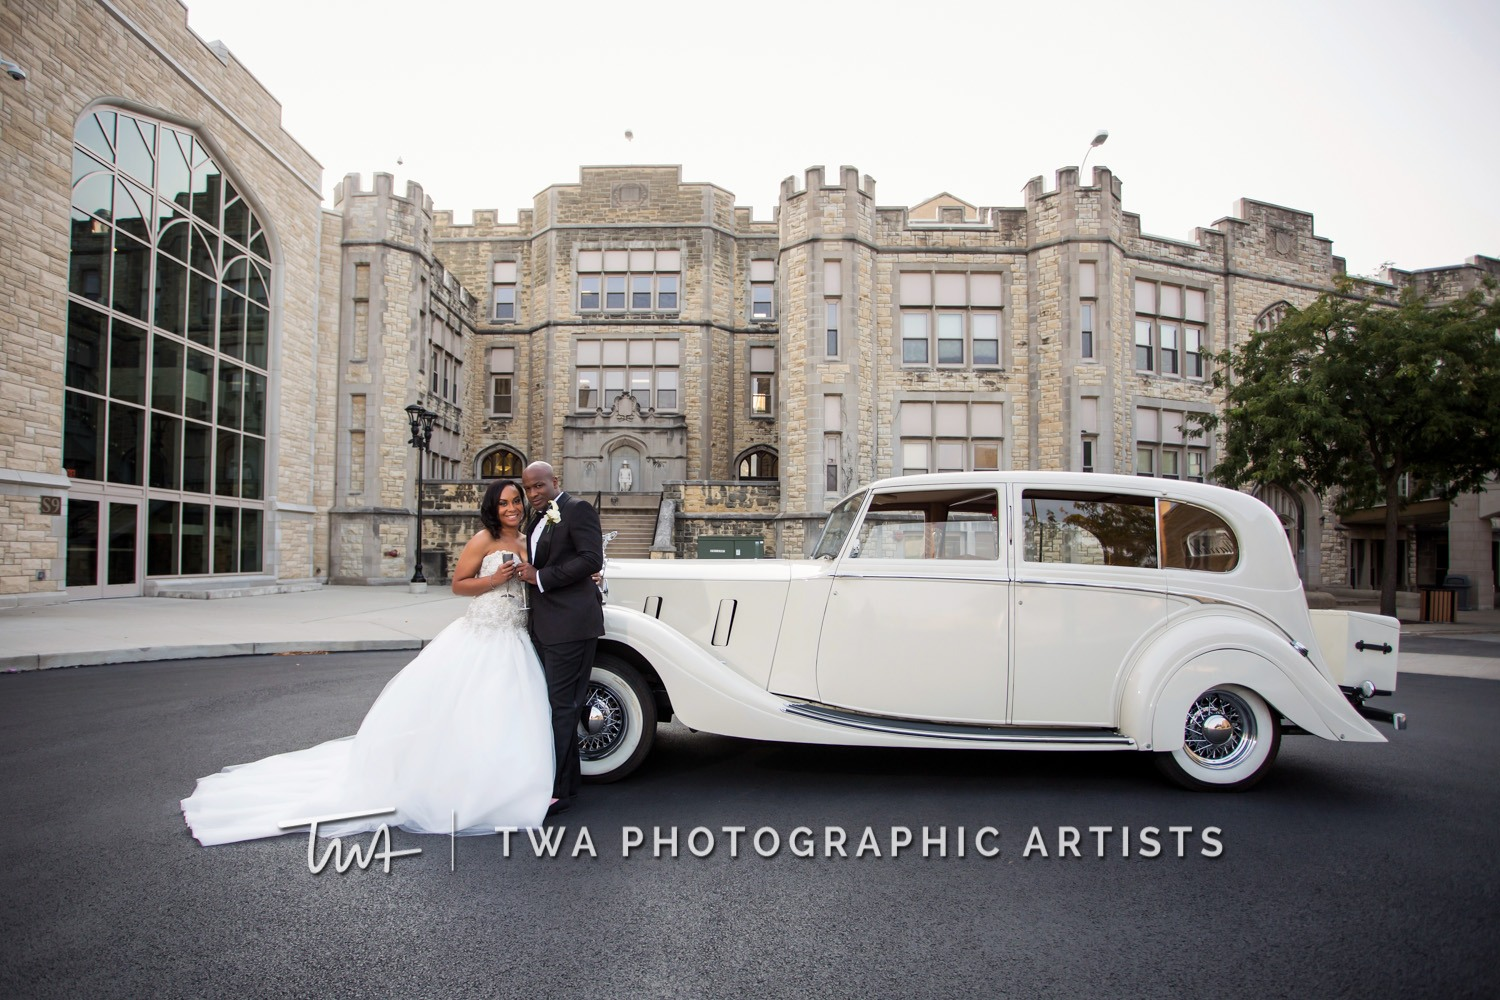 Chicago-Wedding-Photographer-TWA-Photographic-Artists-Haley-Mansion_Graves_Moffett_JM-026_0405